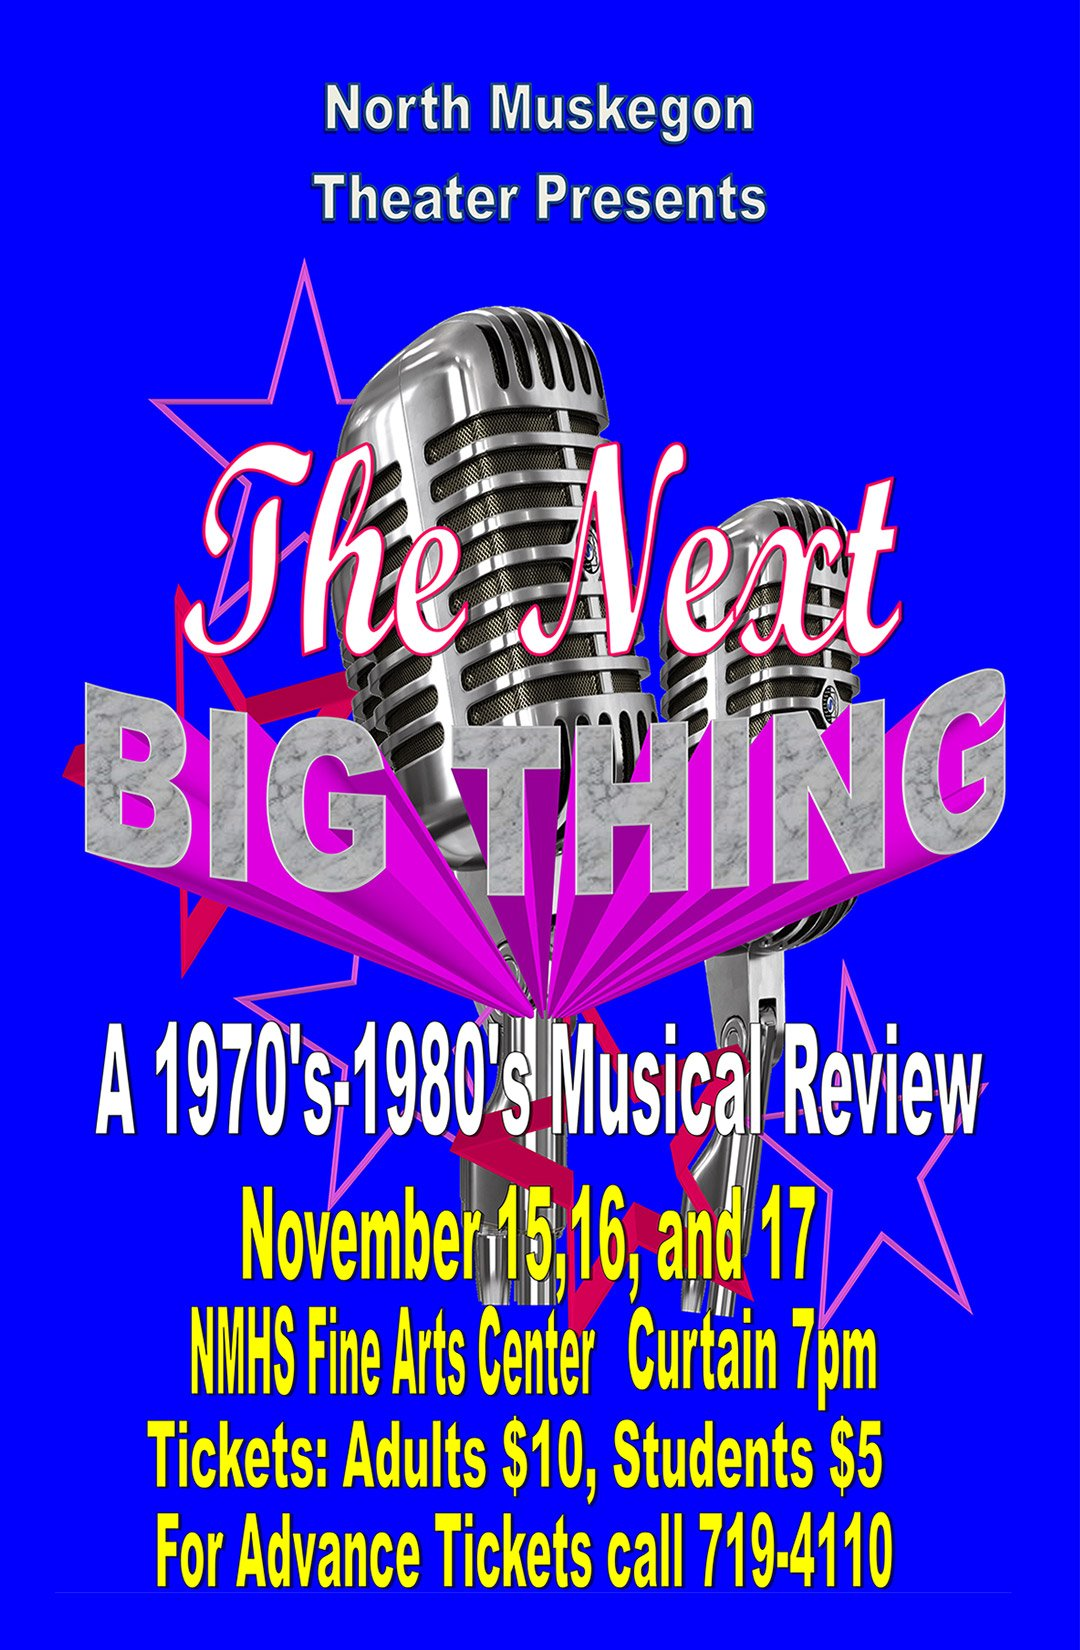 Nov 15, 16, 17 – North Muskegon Theater Presents: The Next Big Thing